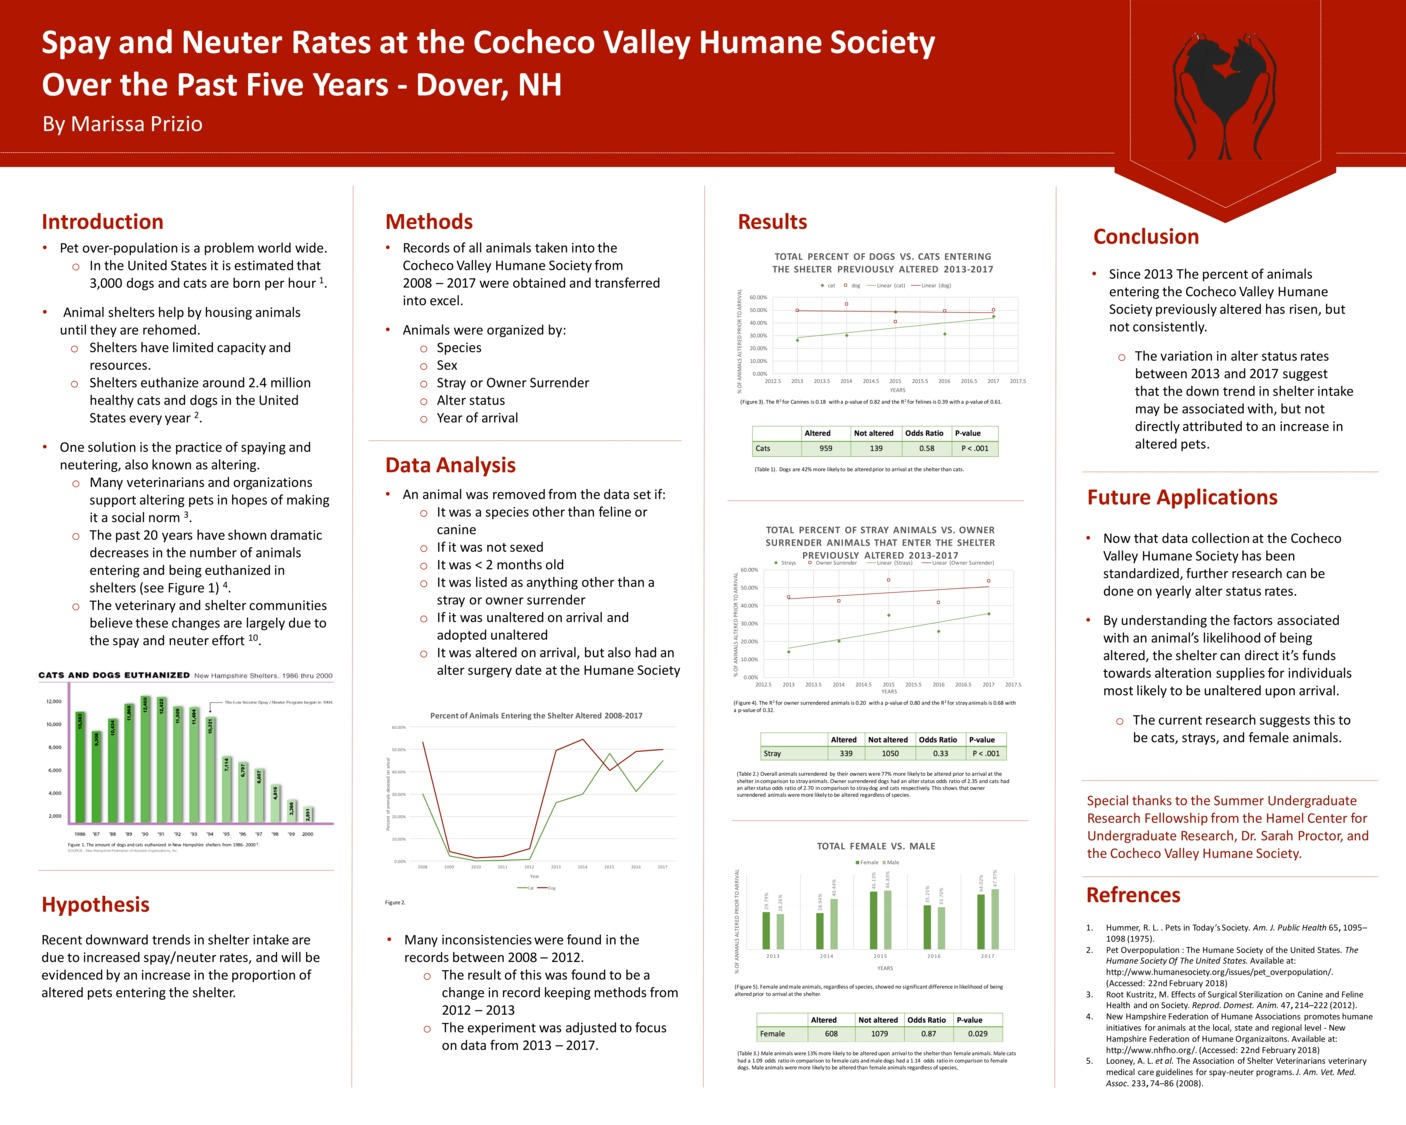 Spay And Neuter Rates At The Cocheco Valley Humane Society  Over The Past Five Years - Dover, Nh by map1007